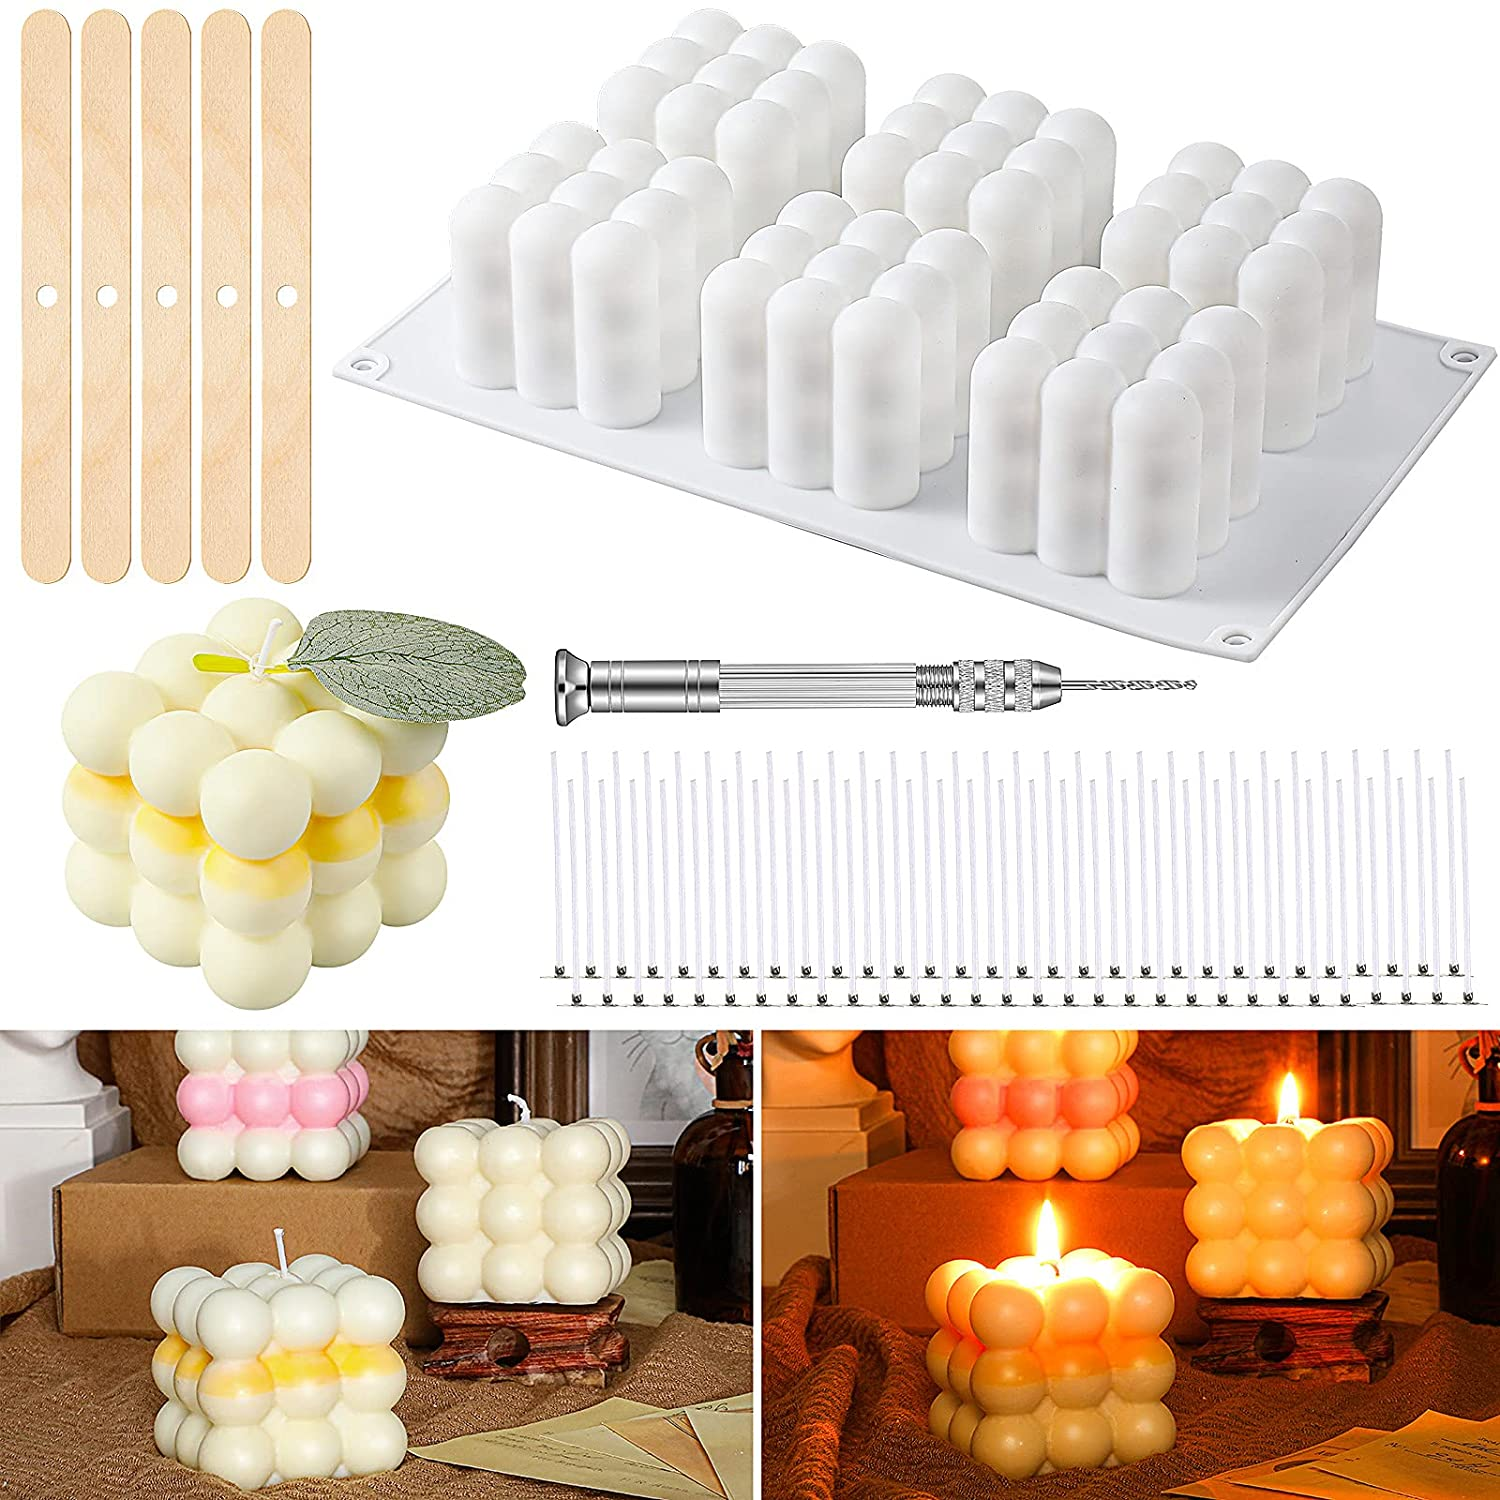 3D Candle Mold Handmade Candles Wicks Support 50 Kit with Limited time for free Bargain sale shipping